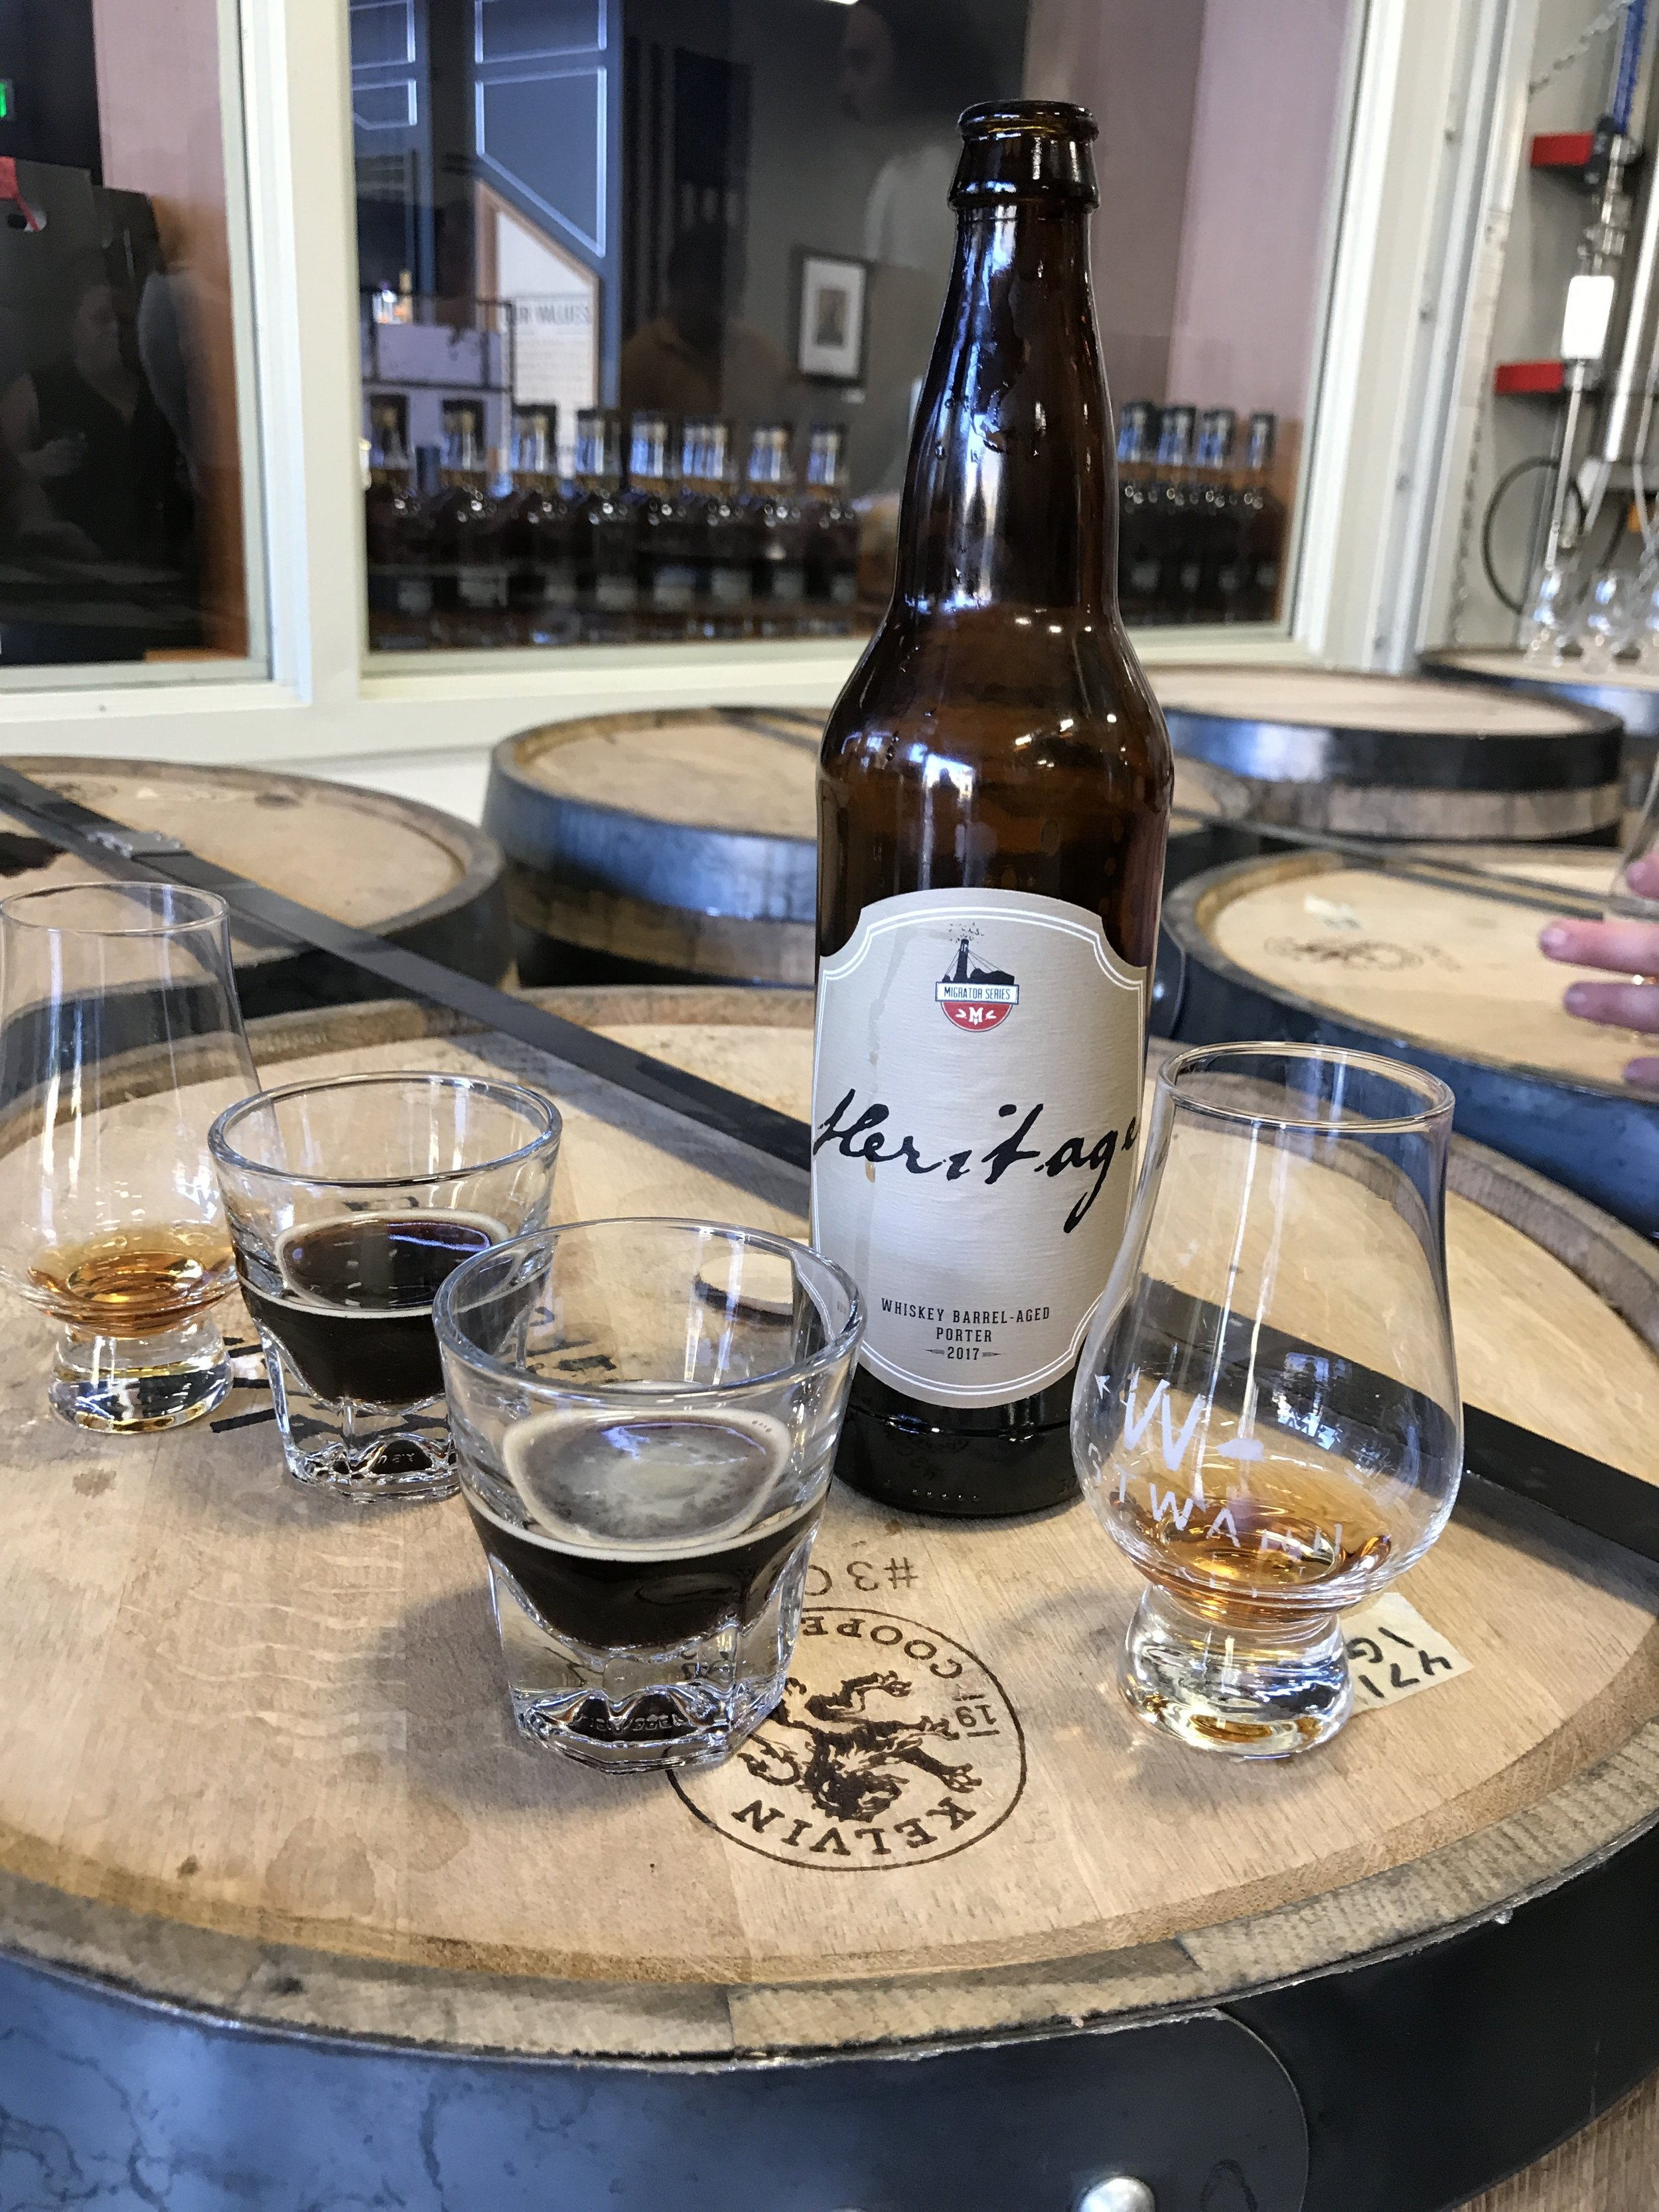 The Pairing: Westward American Single Malt and Migration Brewing's 2017 Heritage, a Whiskey Barrel Aged Porter. Migration aged this beer in House Whiskey Barrels.